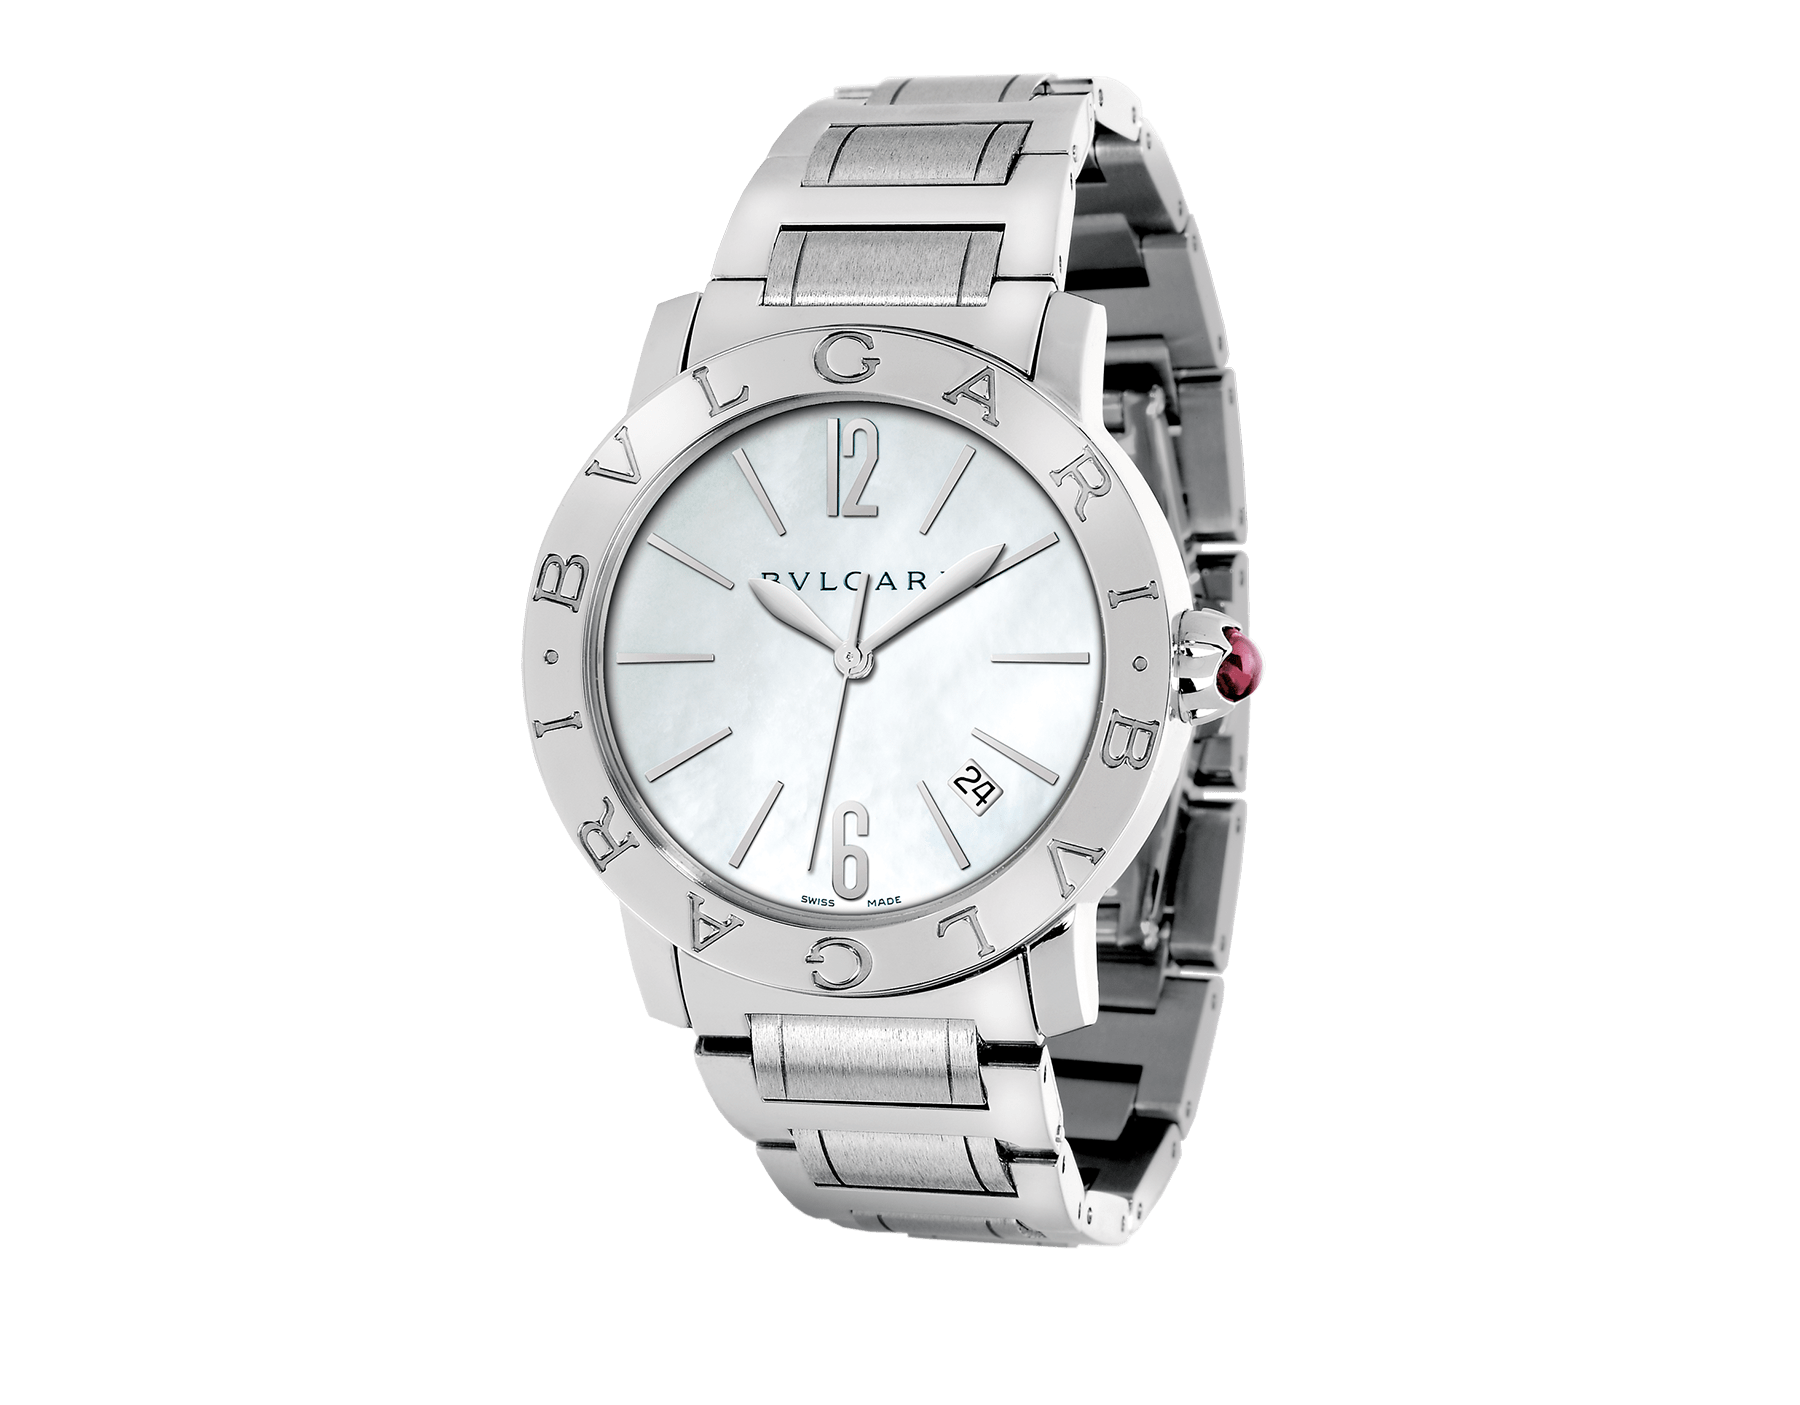 BVLGARI BVLGARI watch in stainless steel case and bracelet with white mother-of-pearl dial and date indication. Large model 101976 image 1